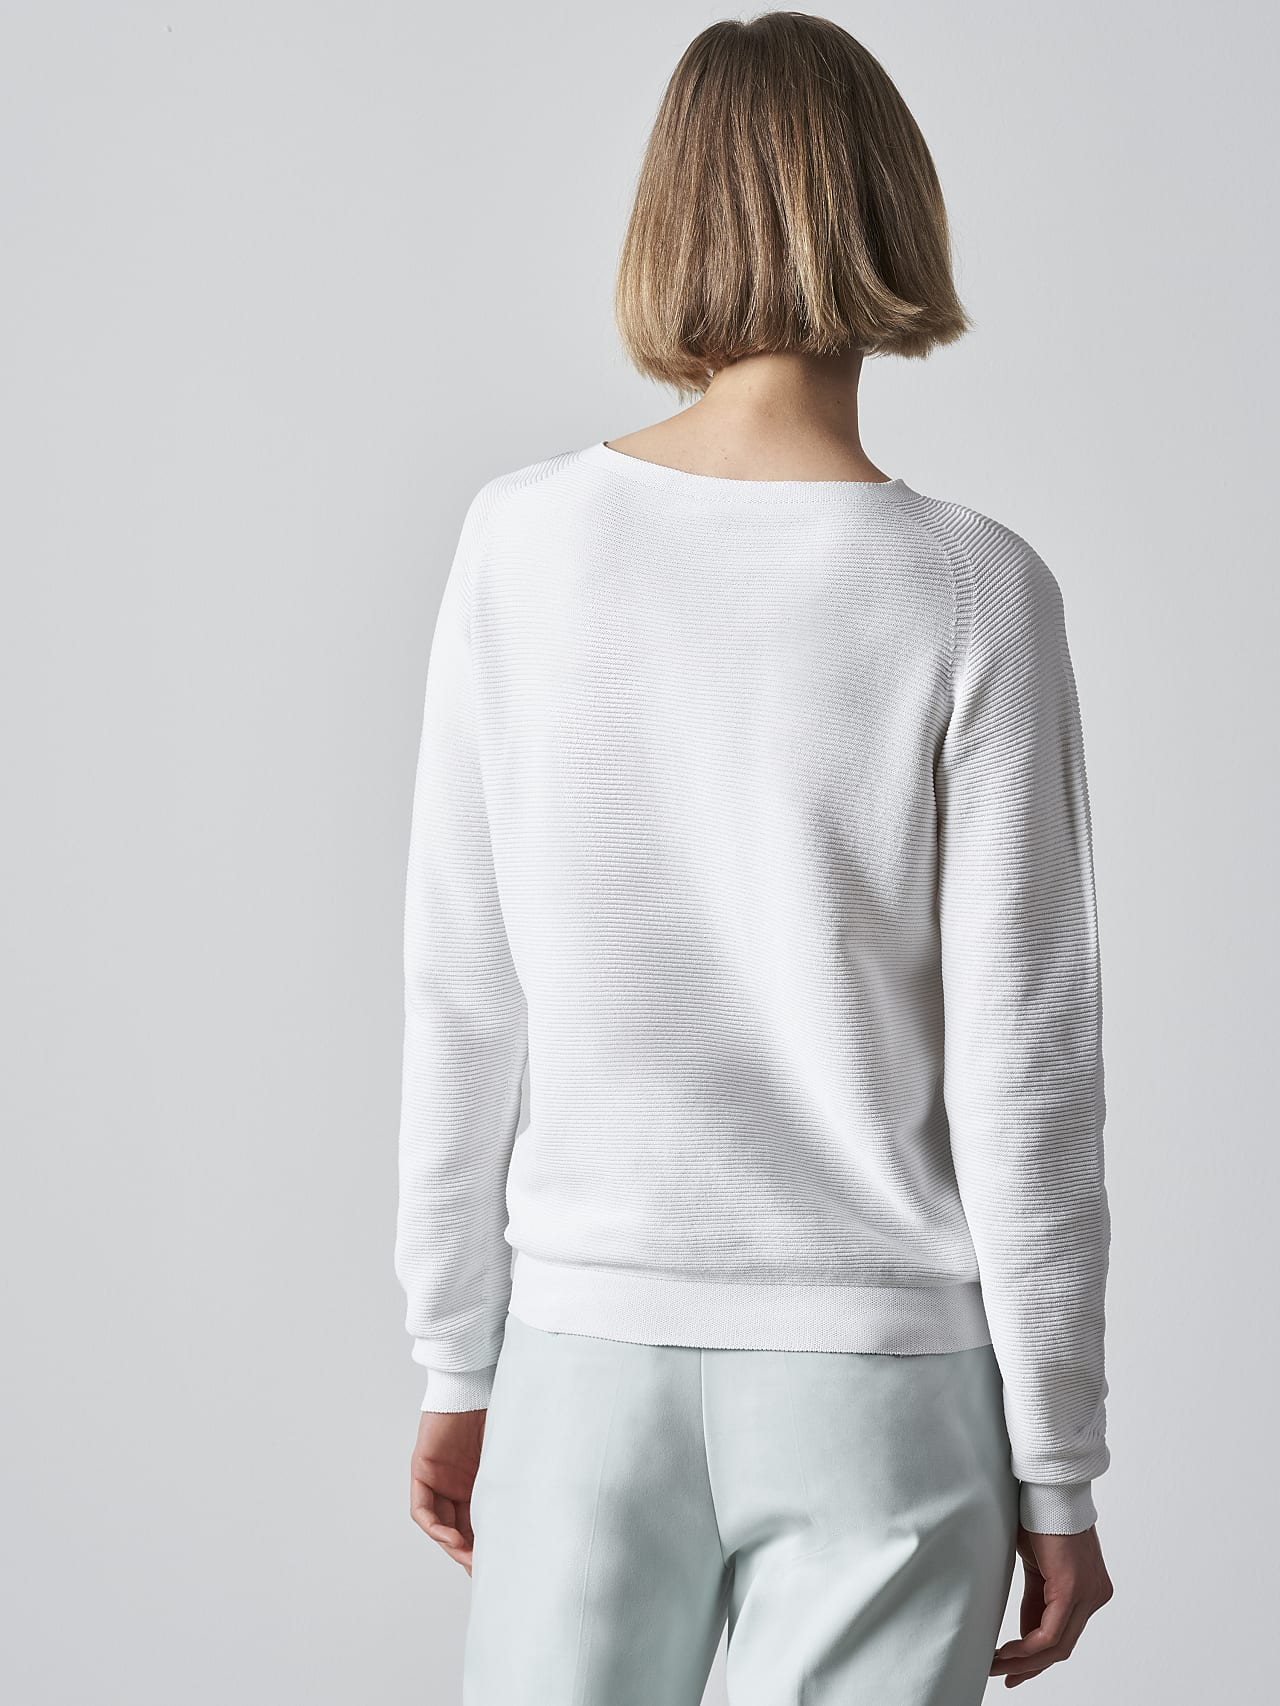 FINTEW V3.Y5.02 Seamless 3D Knit Jumper offwhite Front Main Alpha Tauri